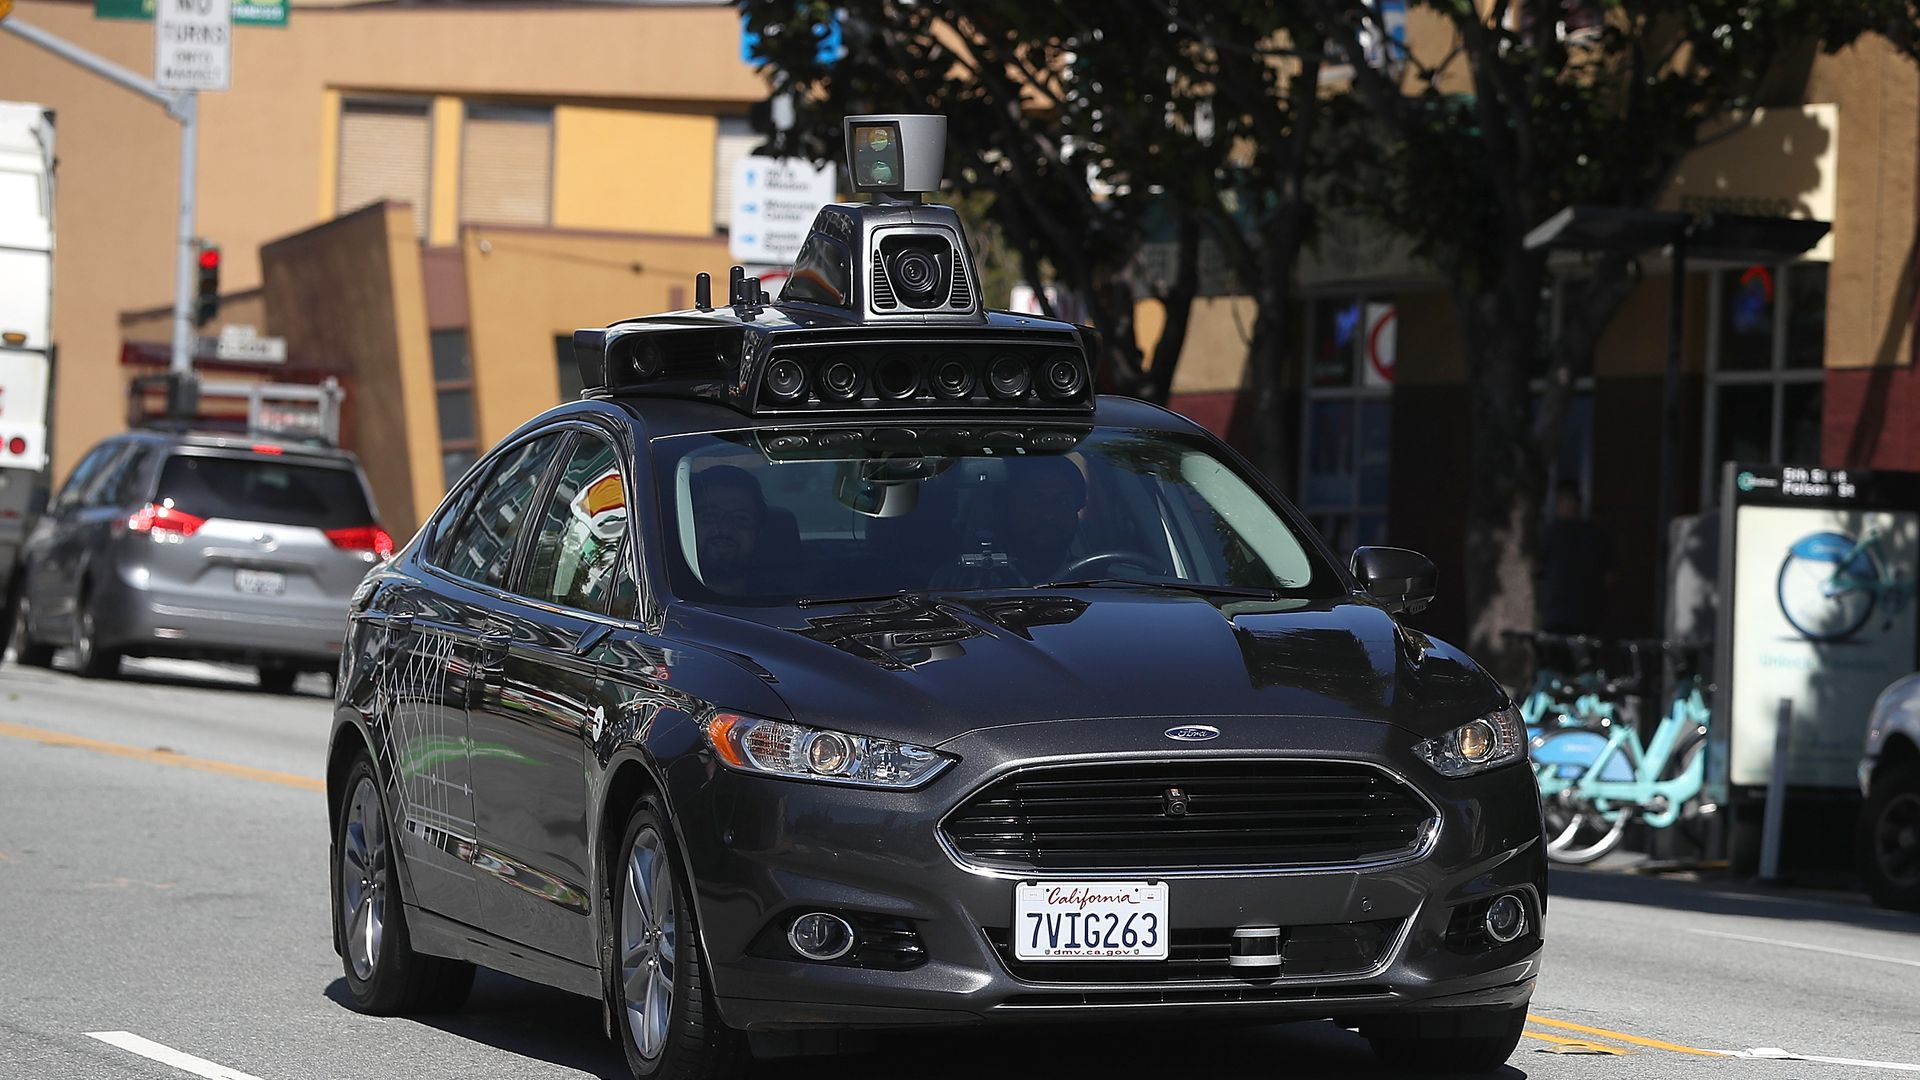 California gives green light to fully driverless car testing Axios